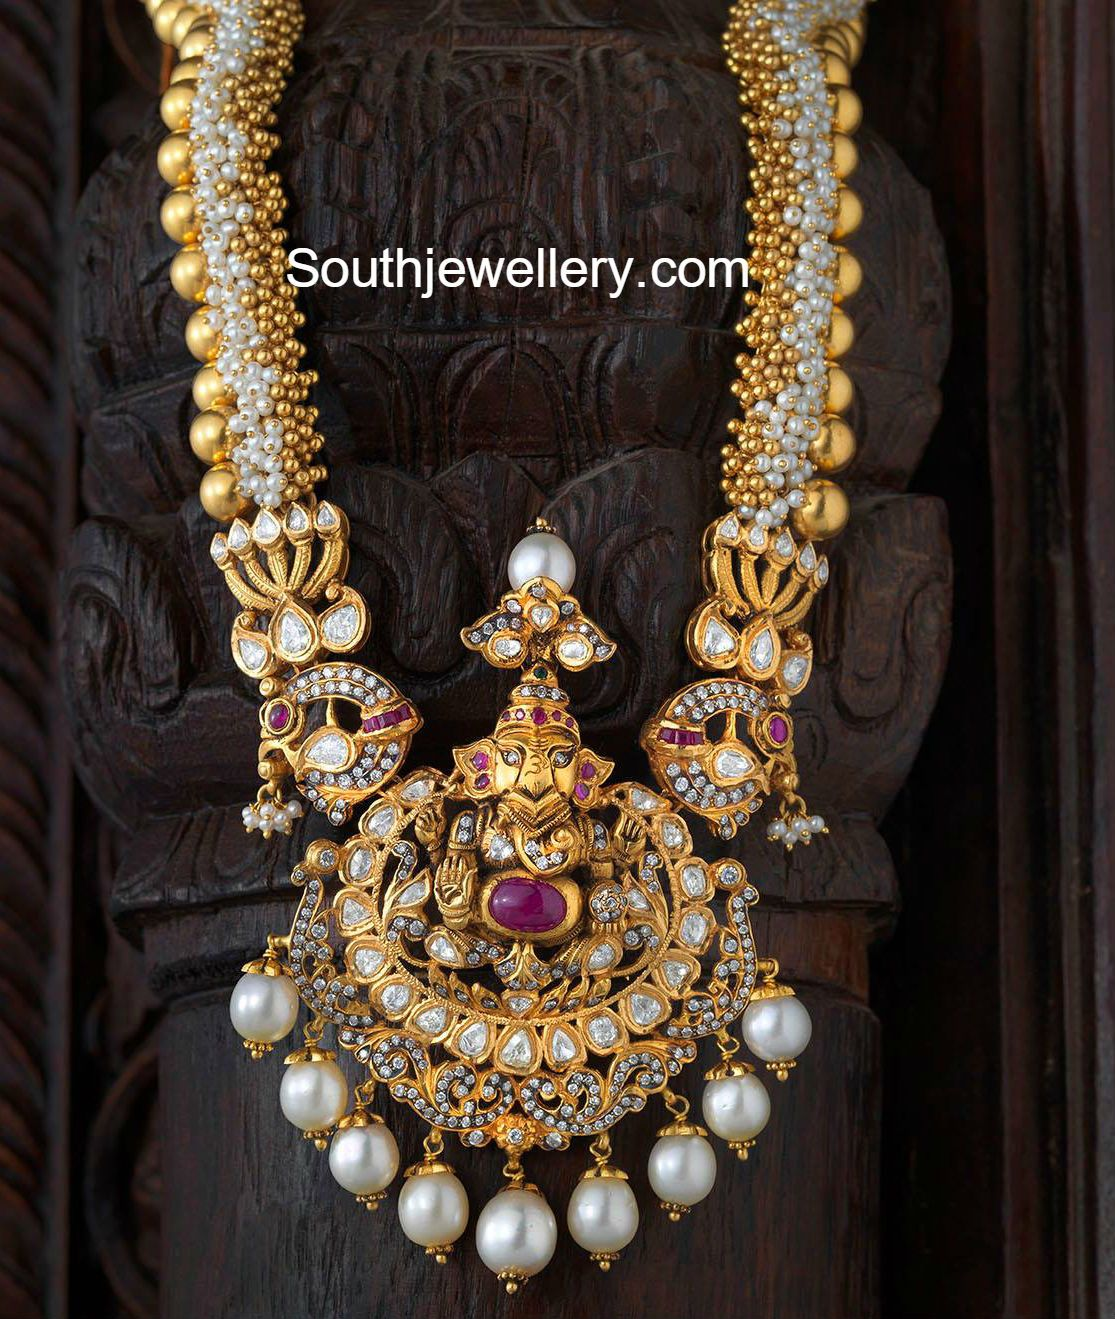 Pin by sushmitha on necklace pinterest indian jewelry jewel and